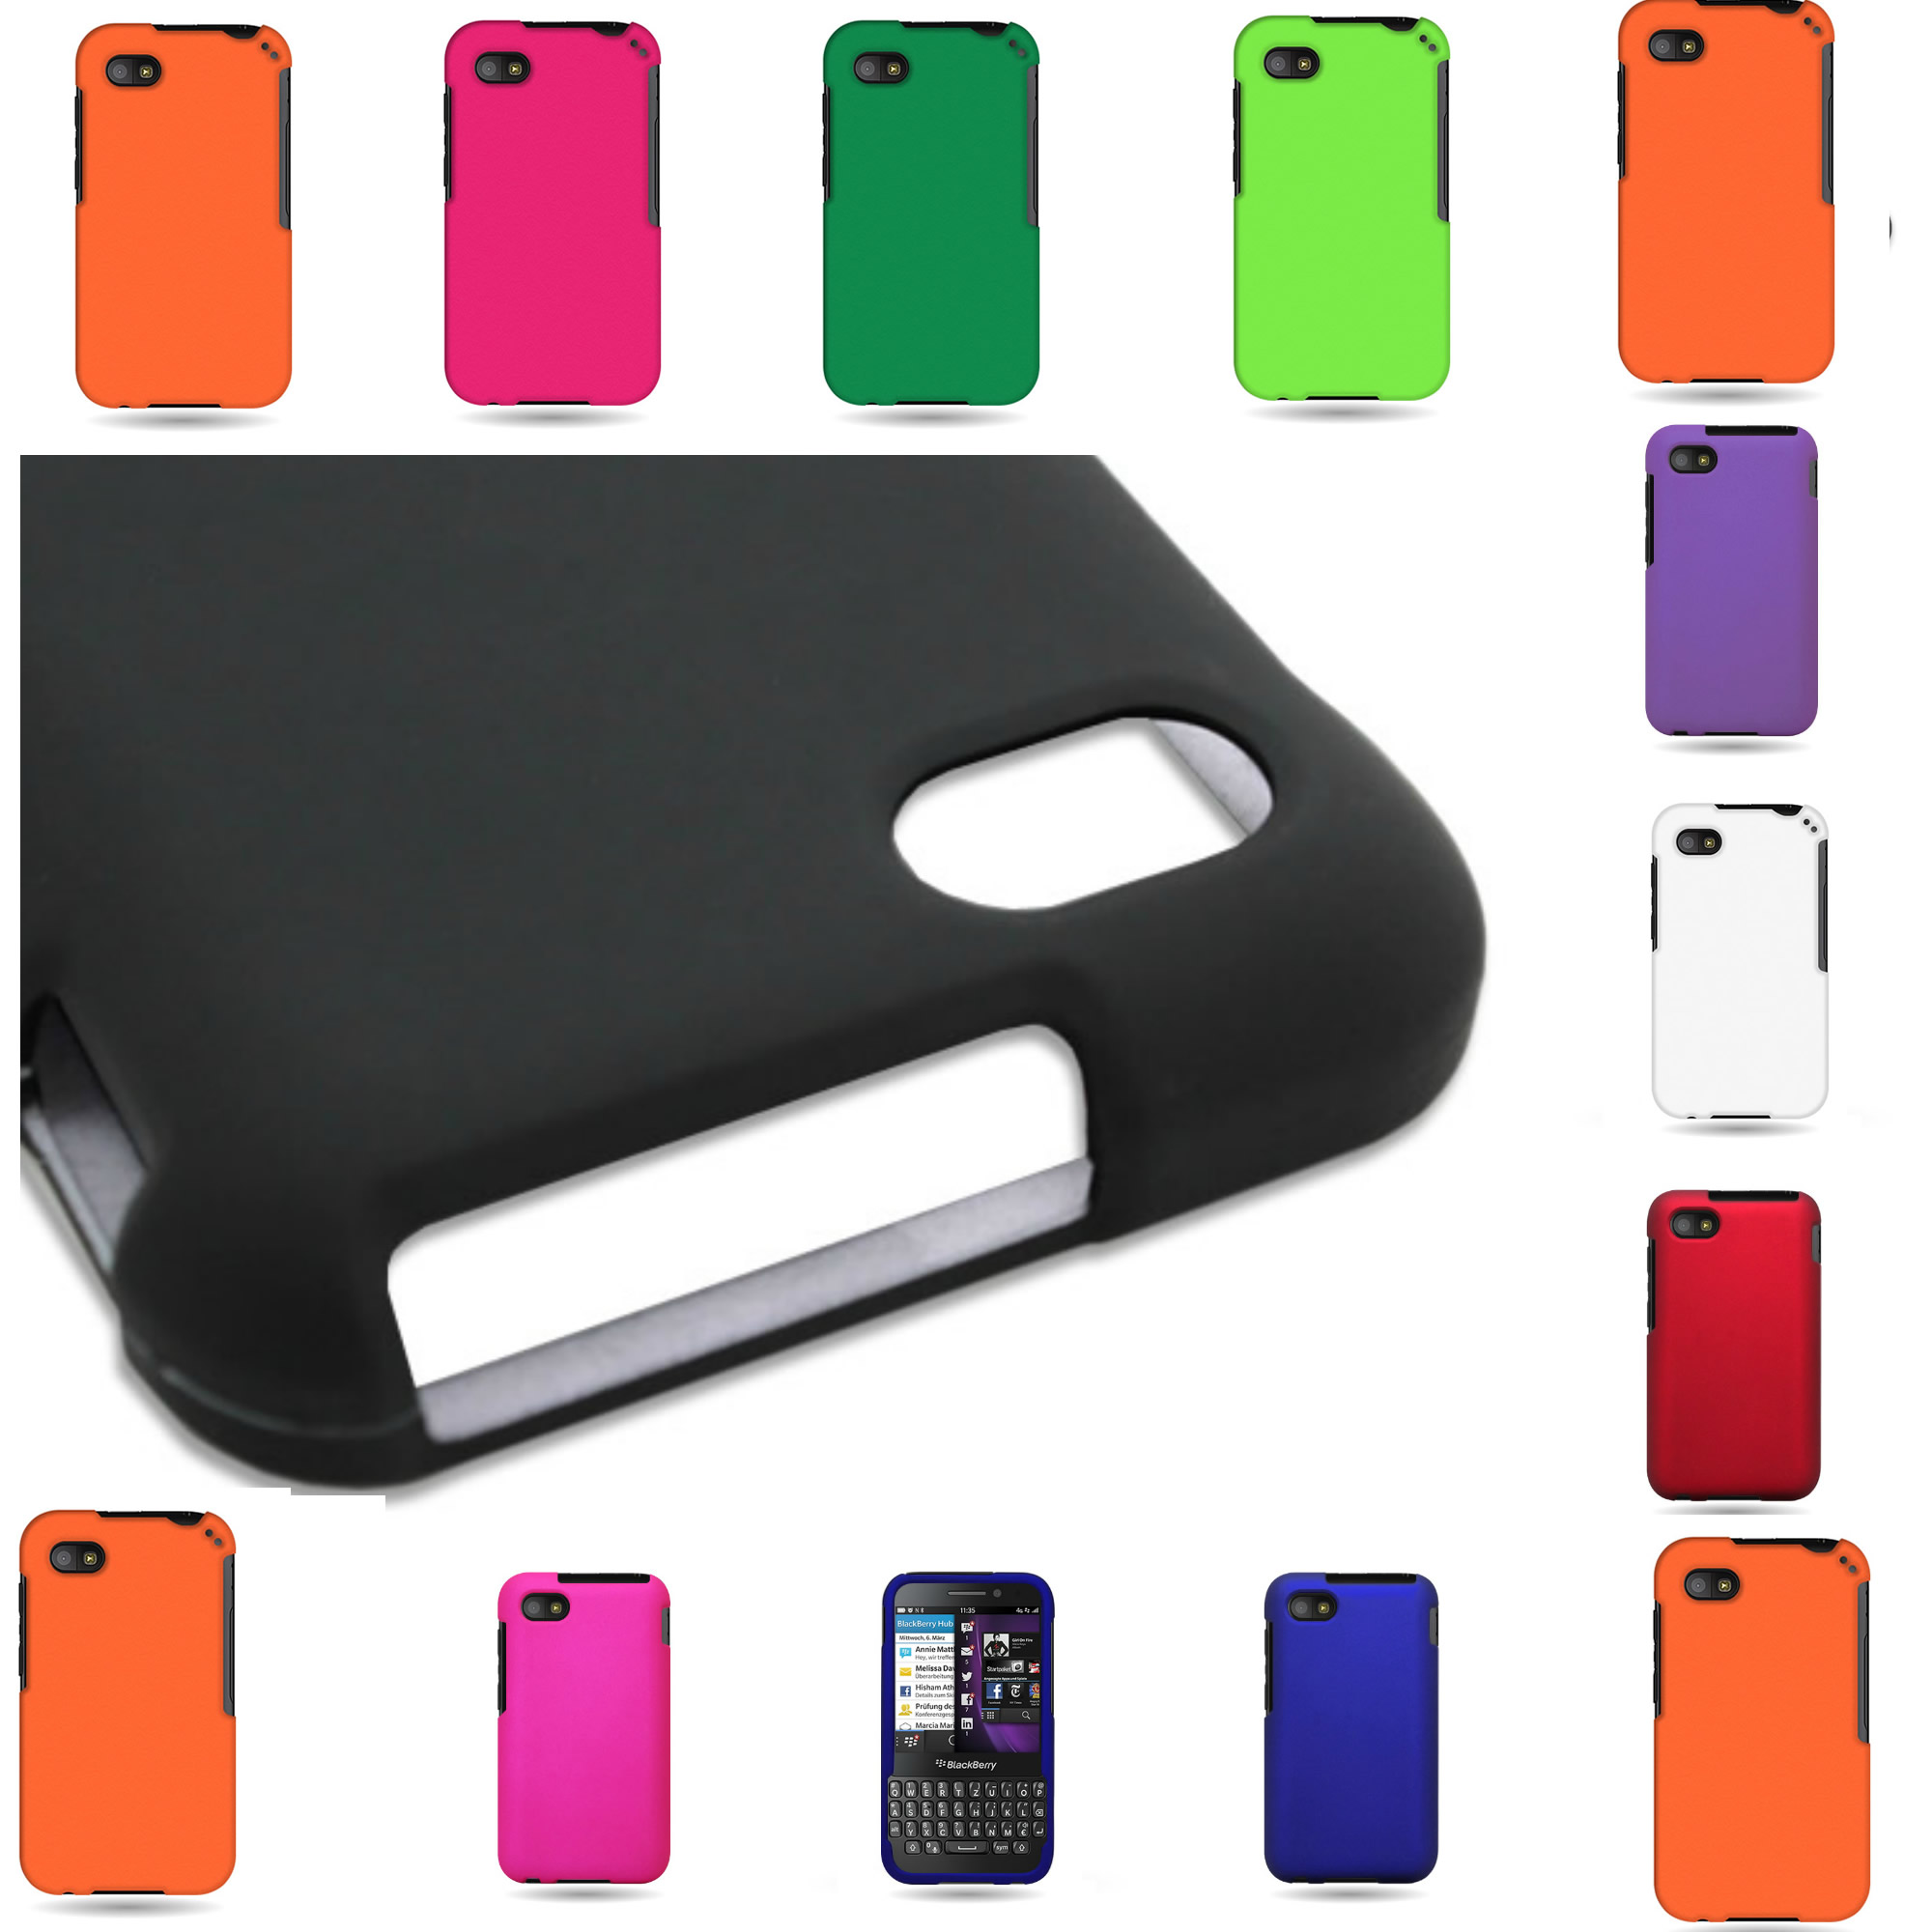 about Slim Hard Rubber Shell Phone Case Cover for Blackberry Q5